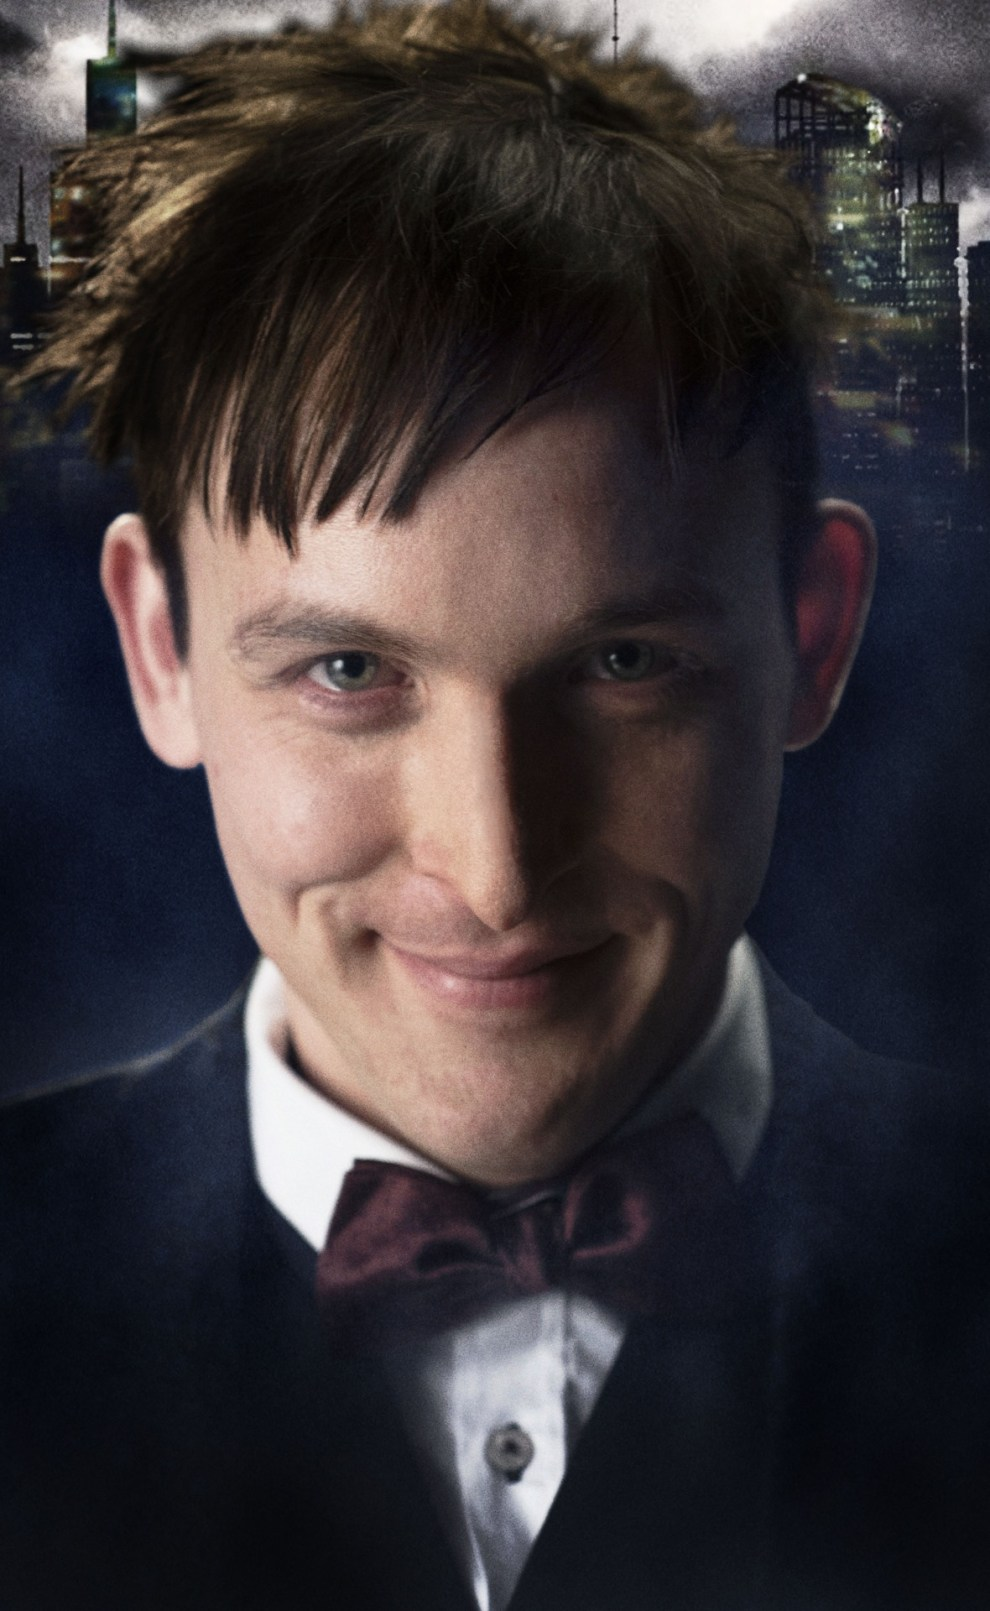 Oswald Cobblepot (a.k.a. the Penguin)